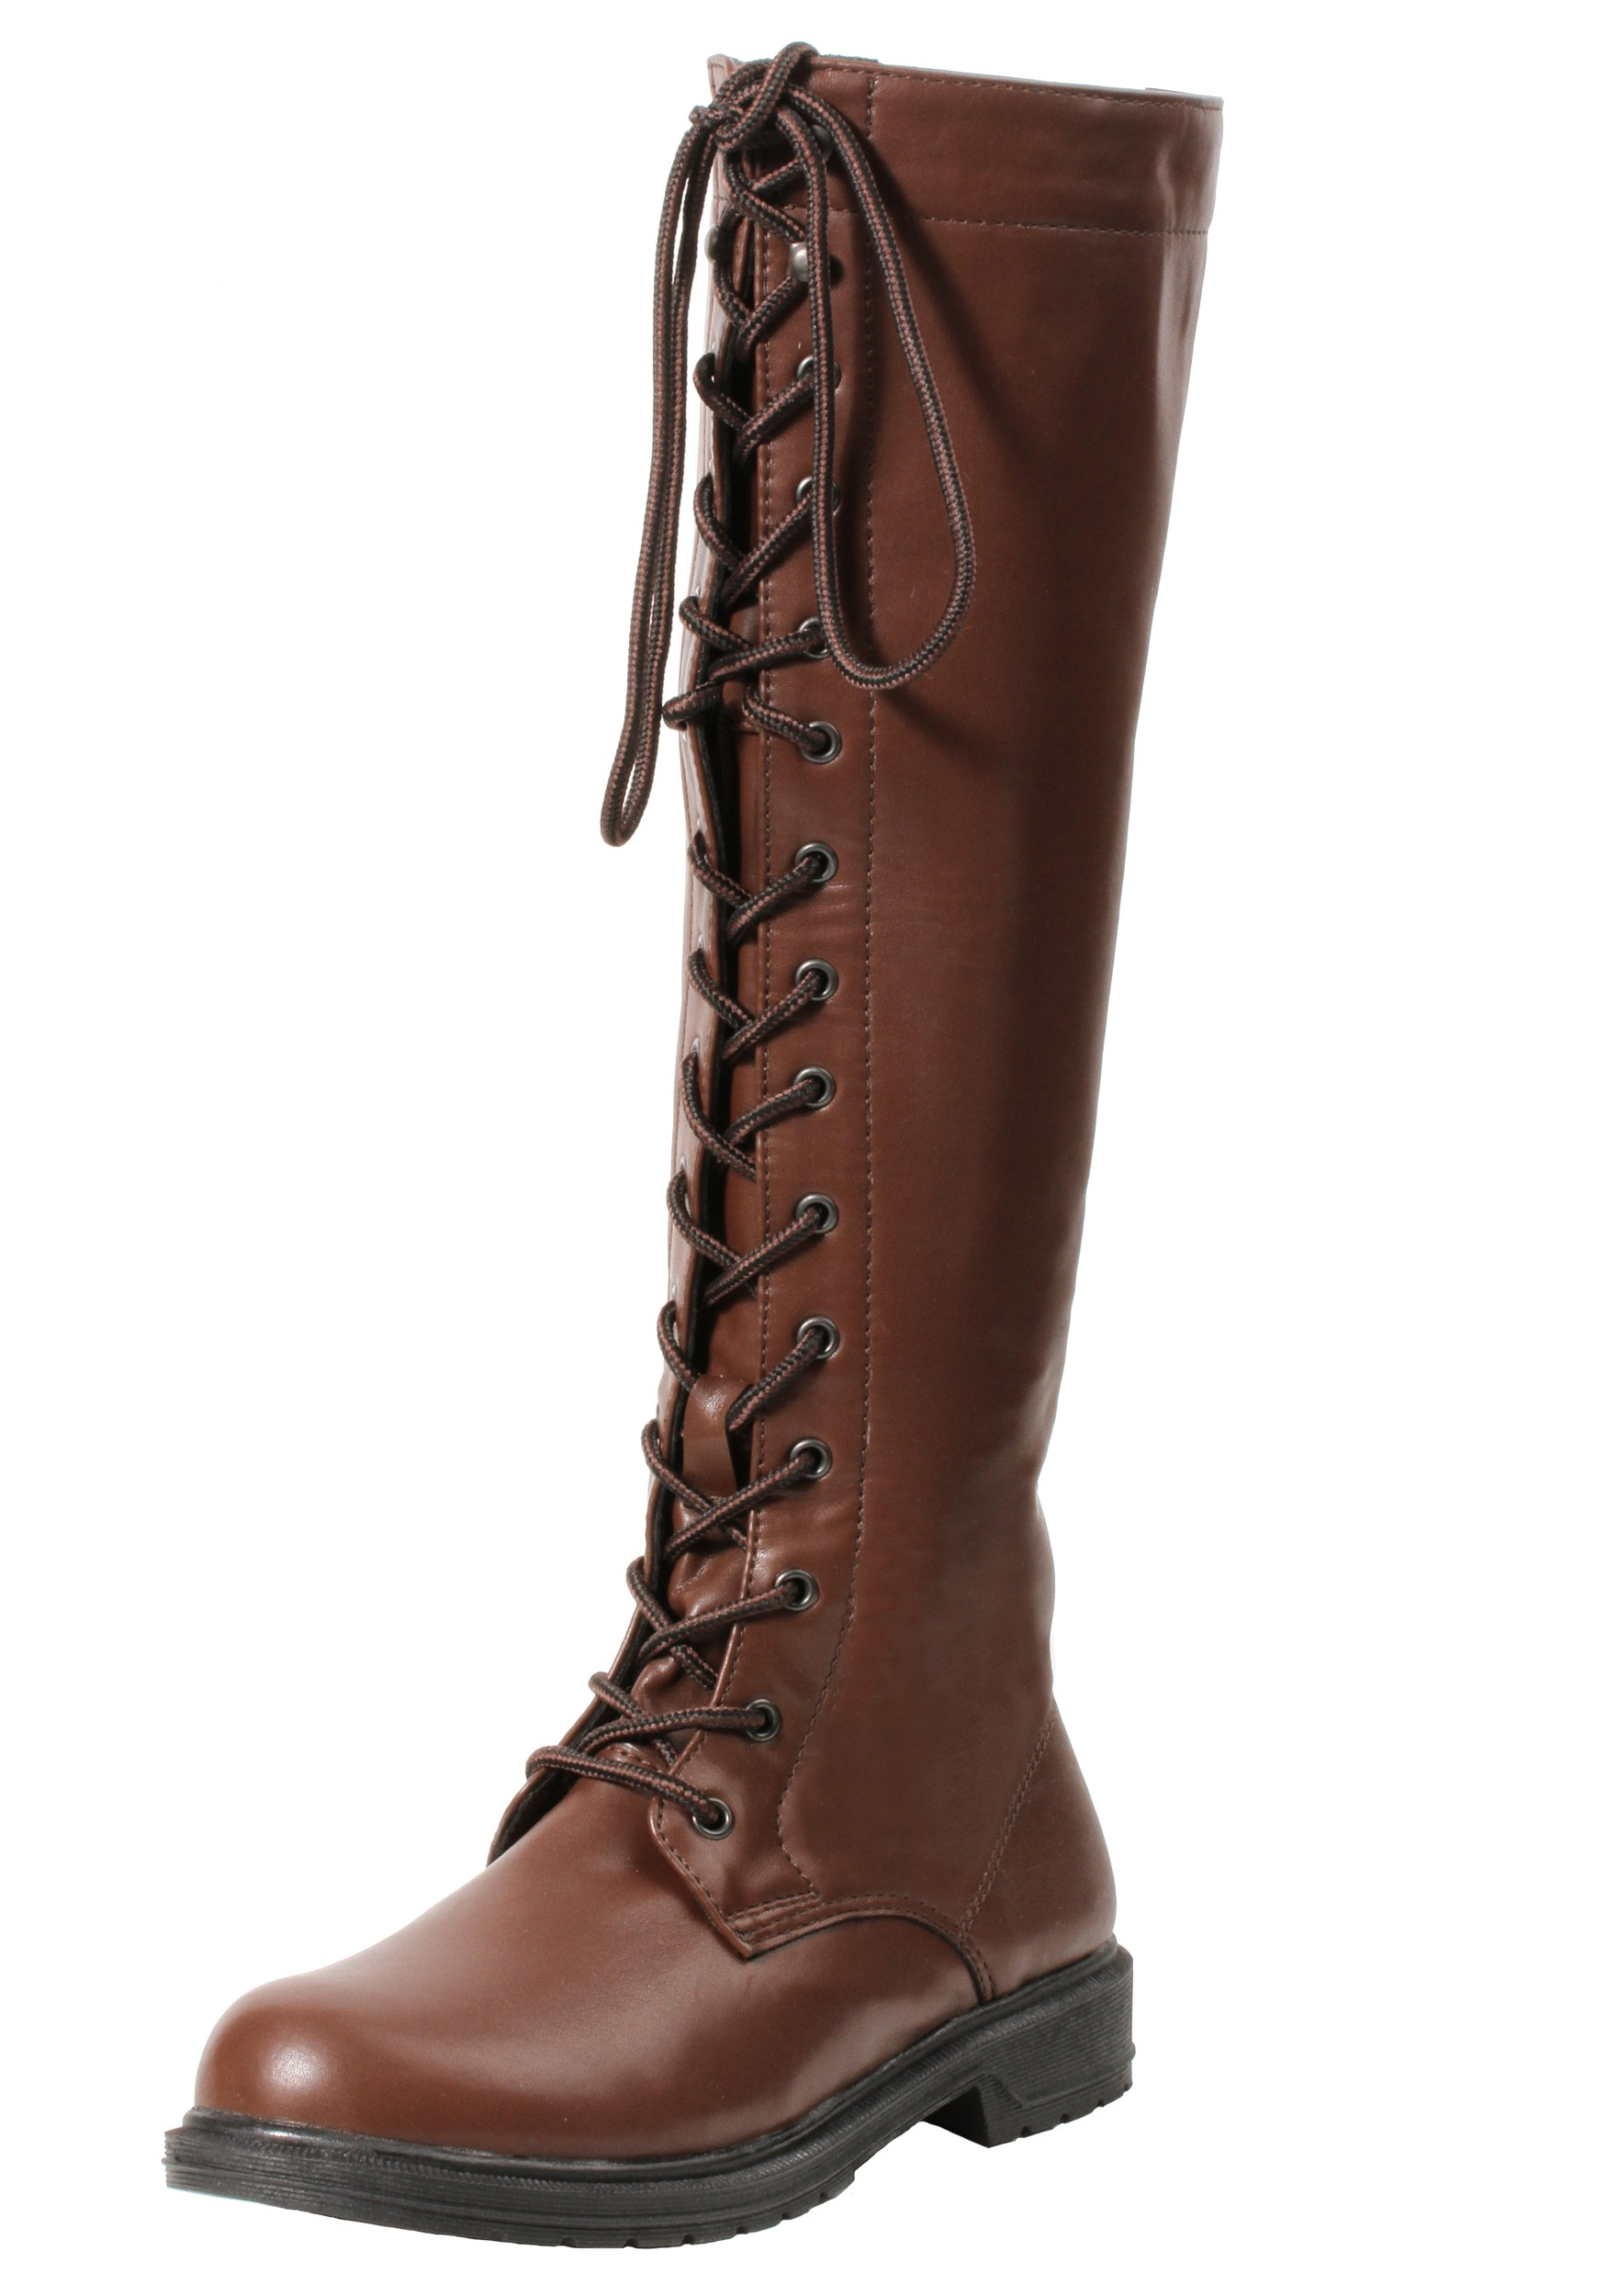 Lace Up Boots Women coLIm1Rx